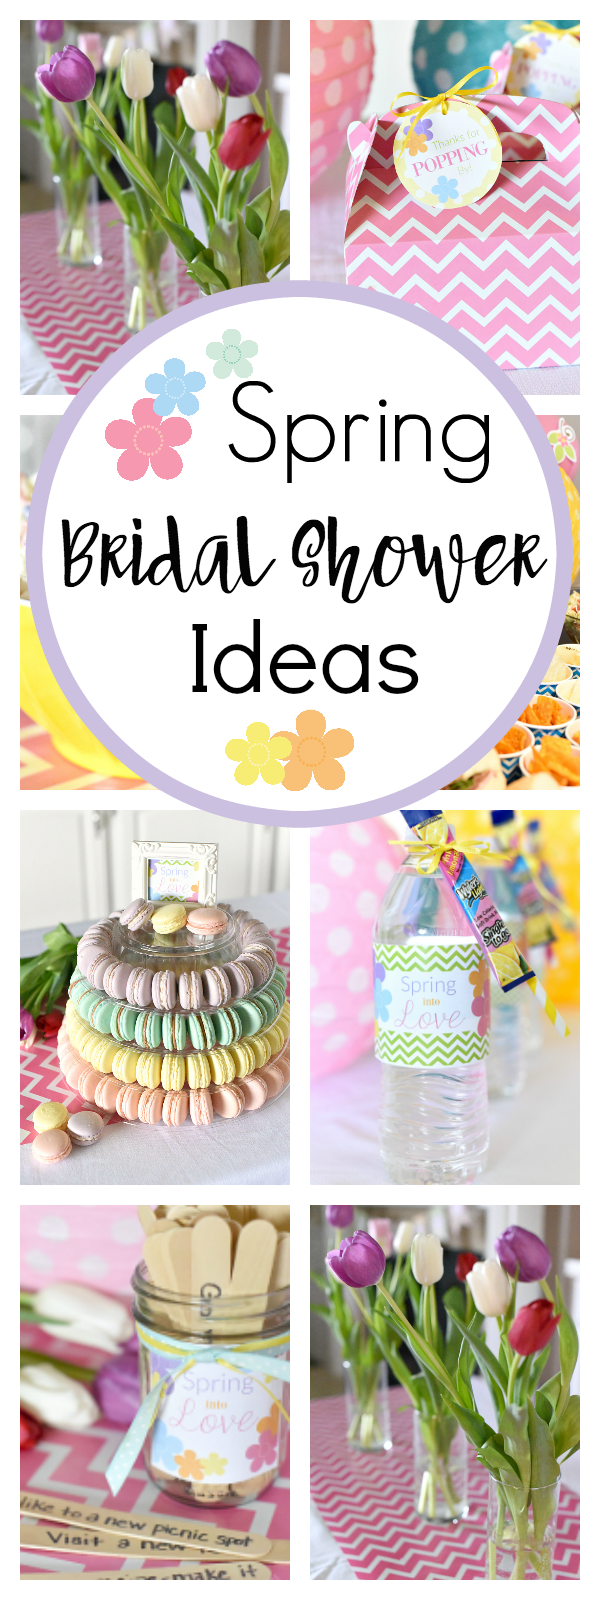 Bridal Shower Ideas-Game, Favors, Invitations